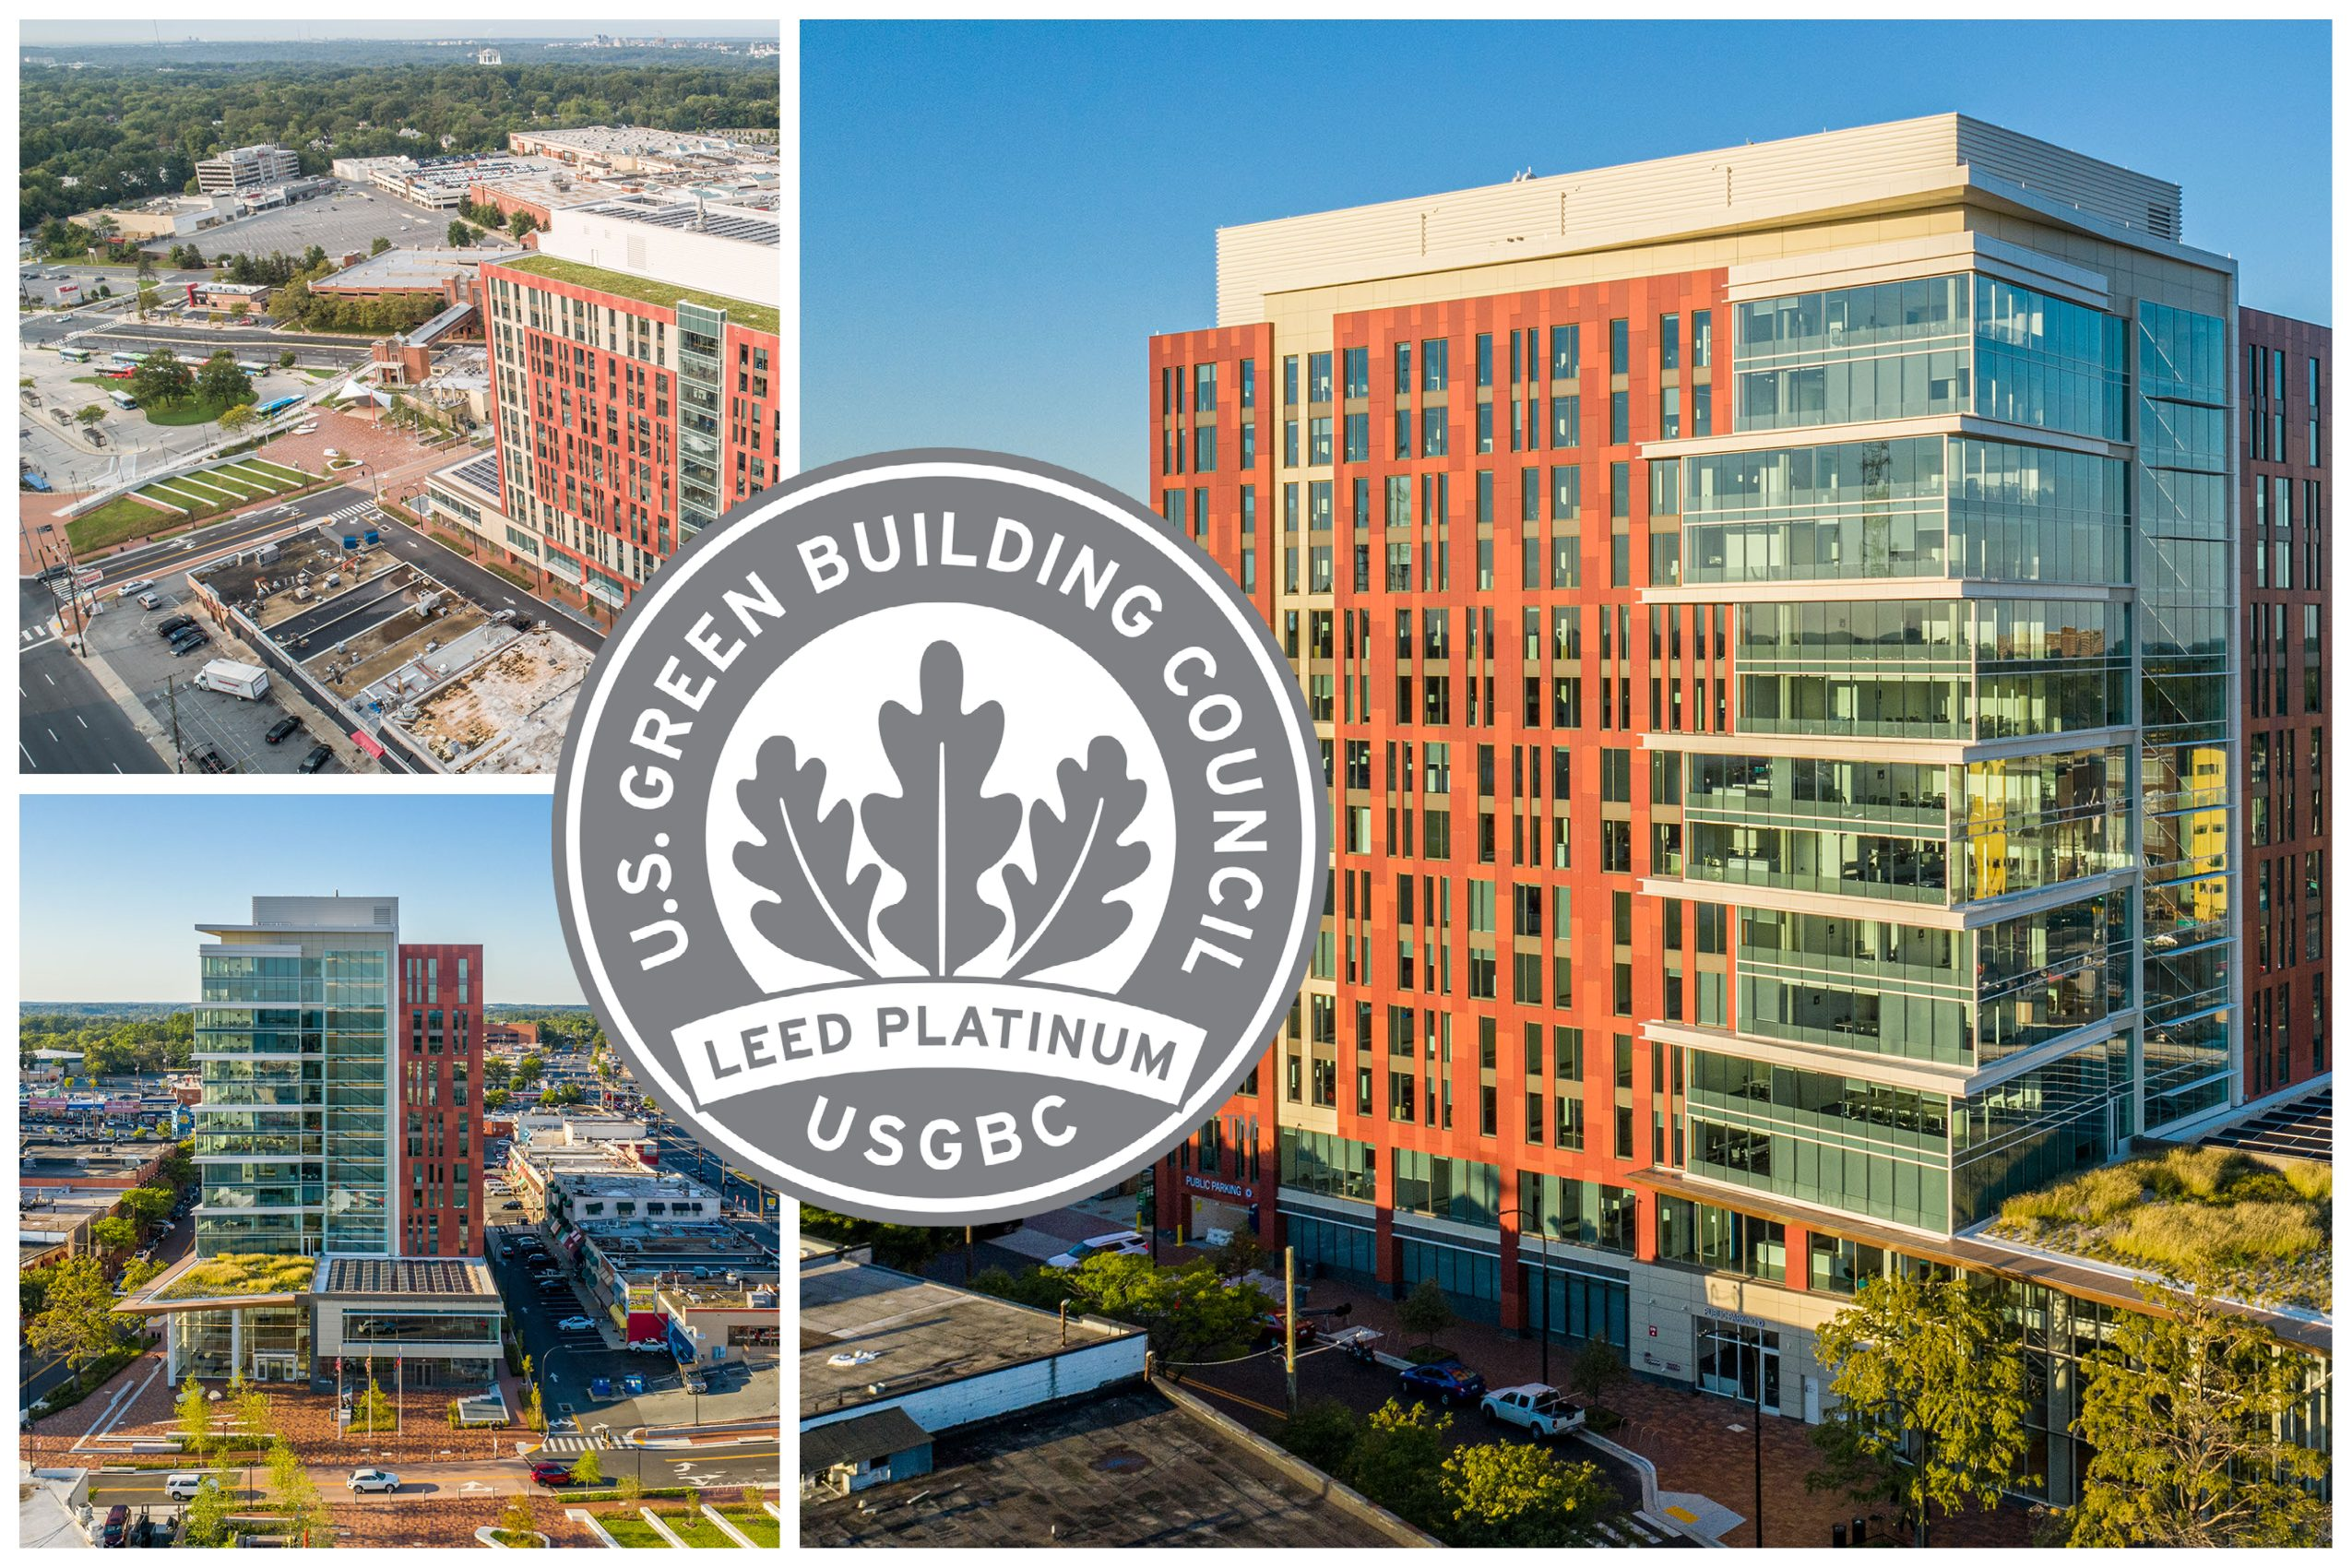 Exterior views of Wheaton HQ and LEED Platinum seal